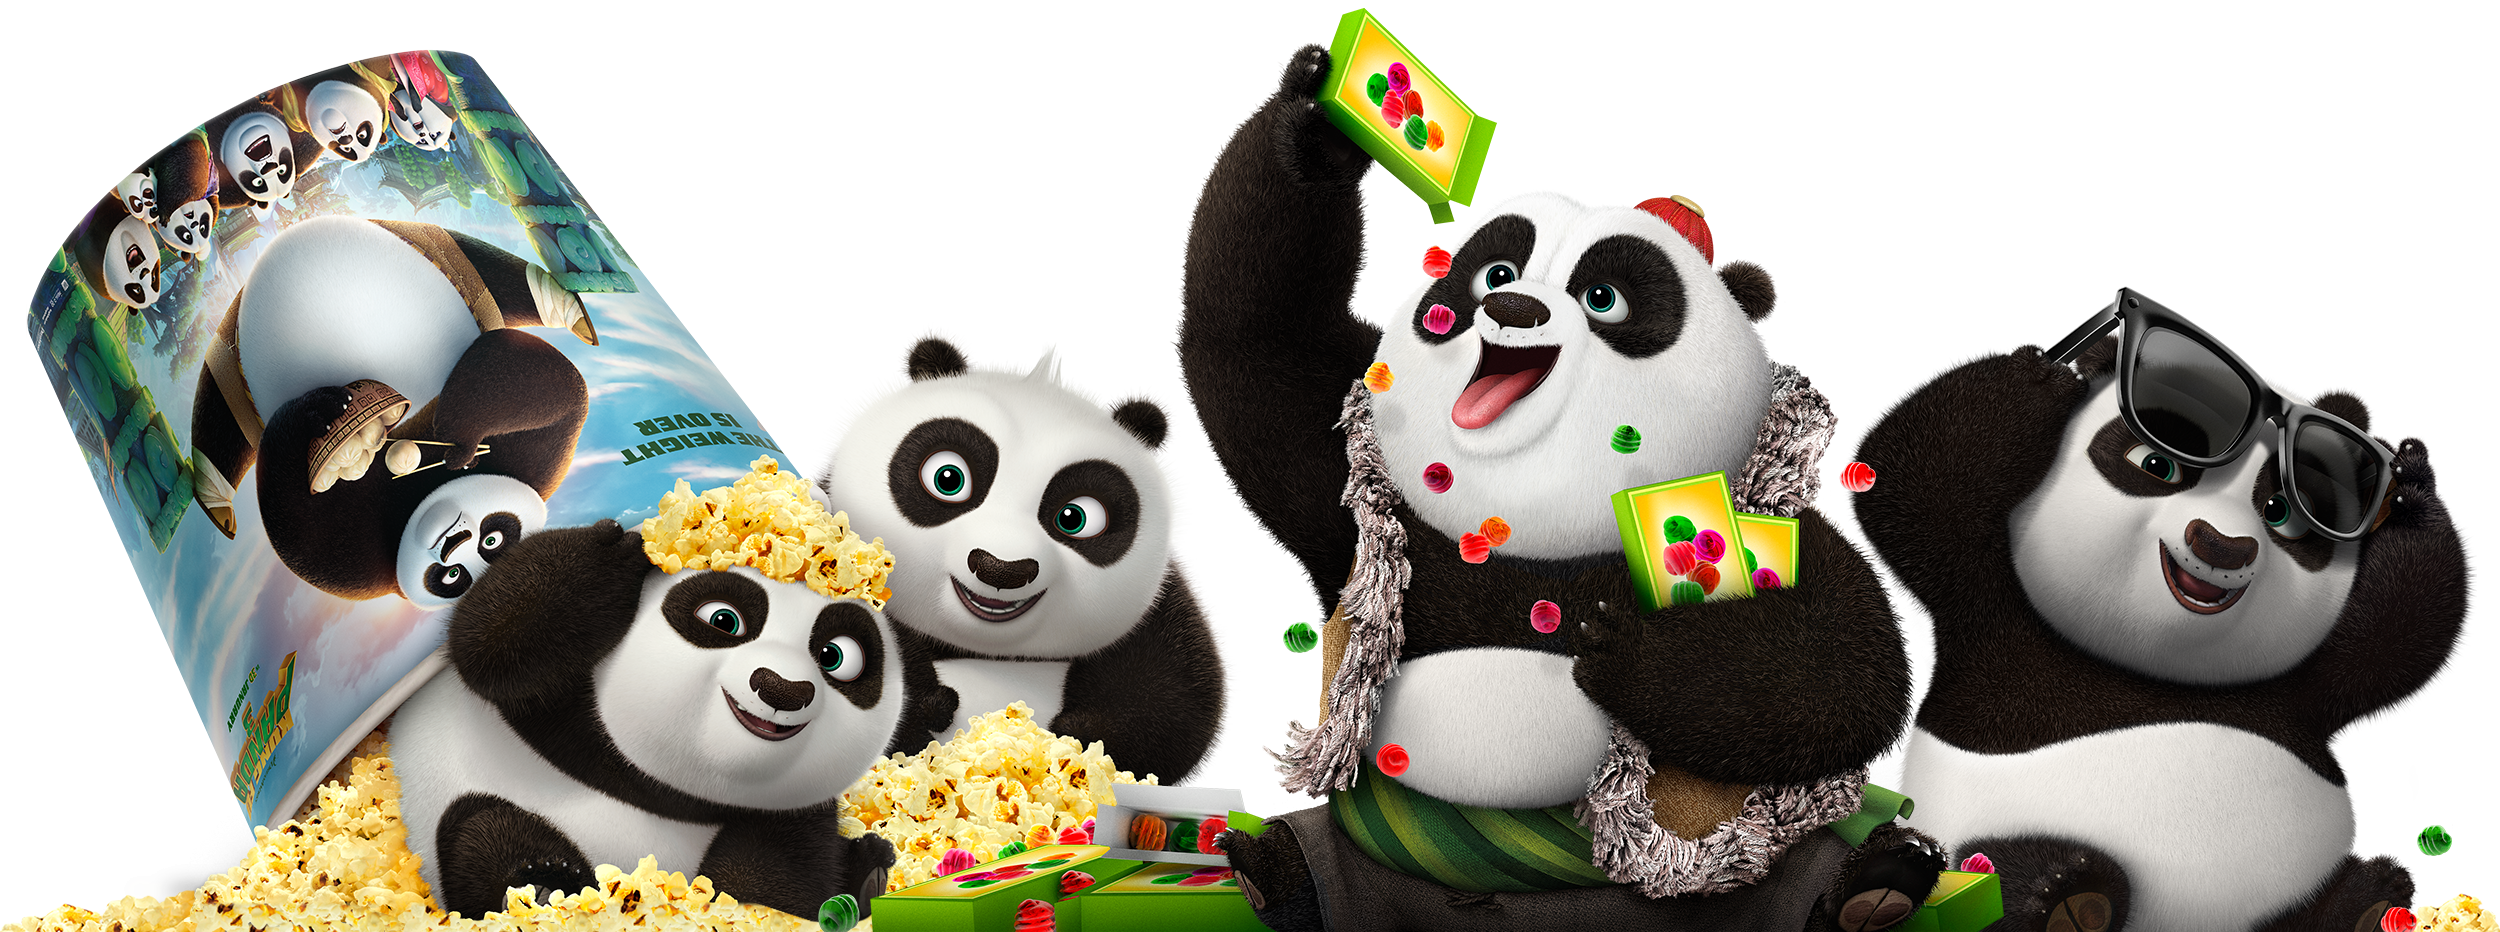 Kung fu panda 3 png. Ten studios clings finishing